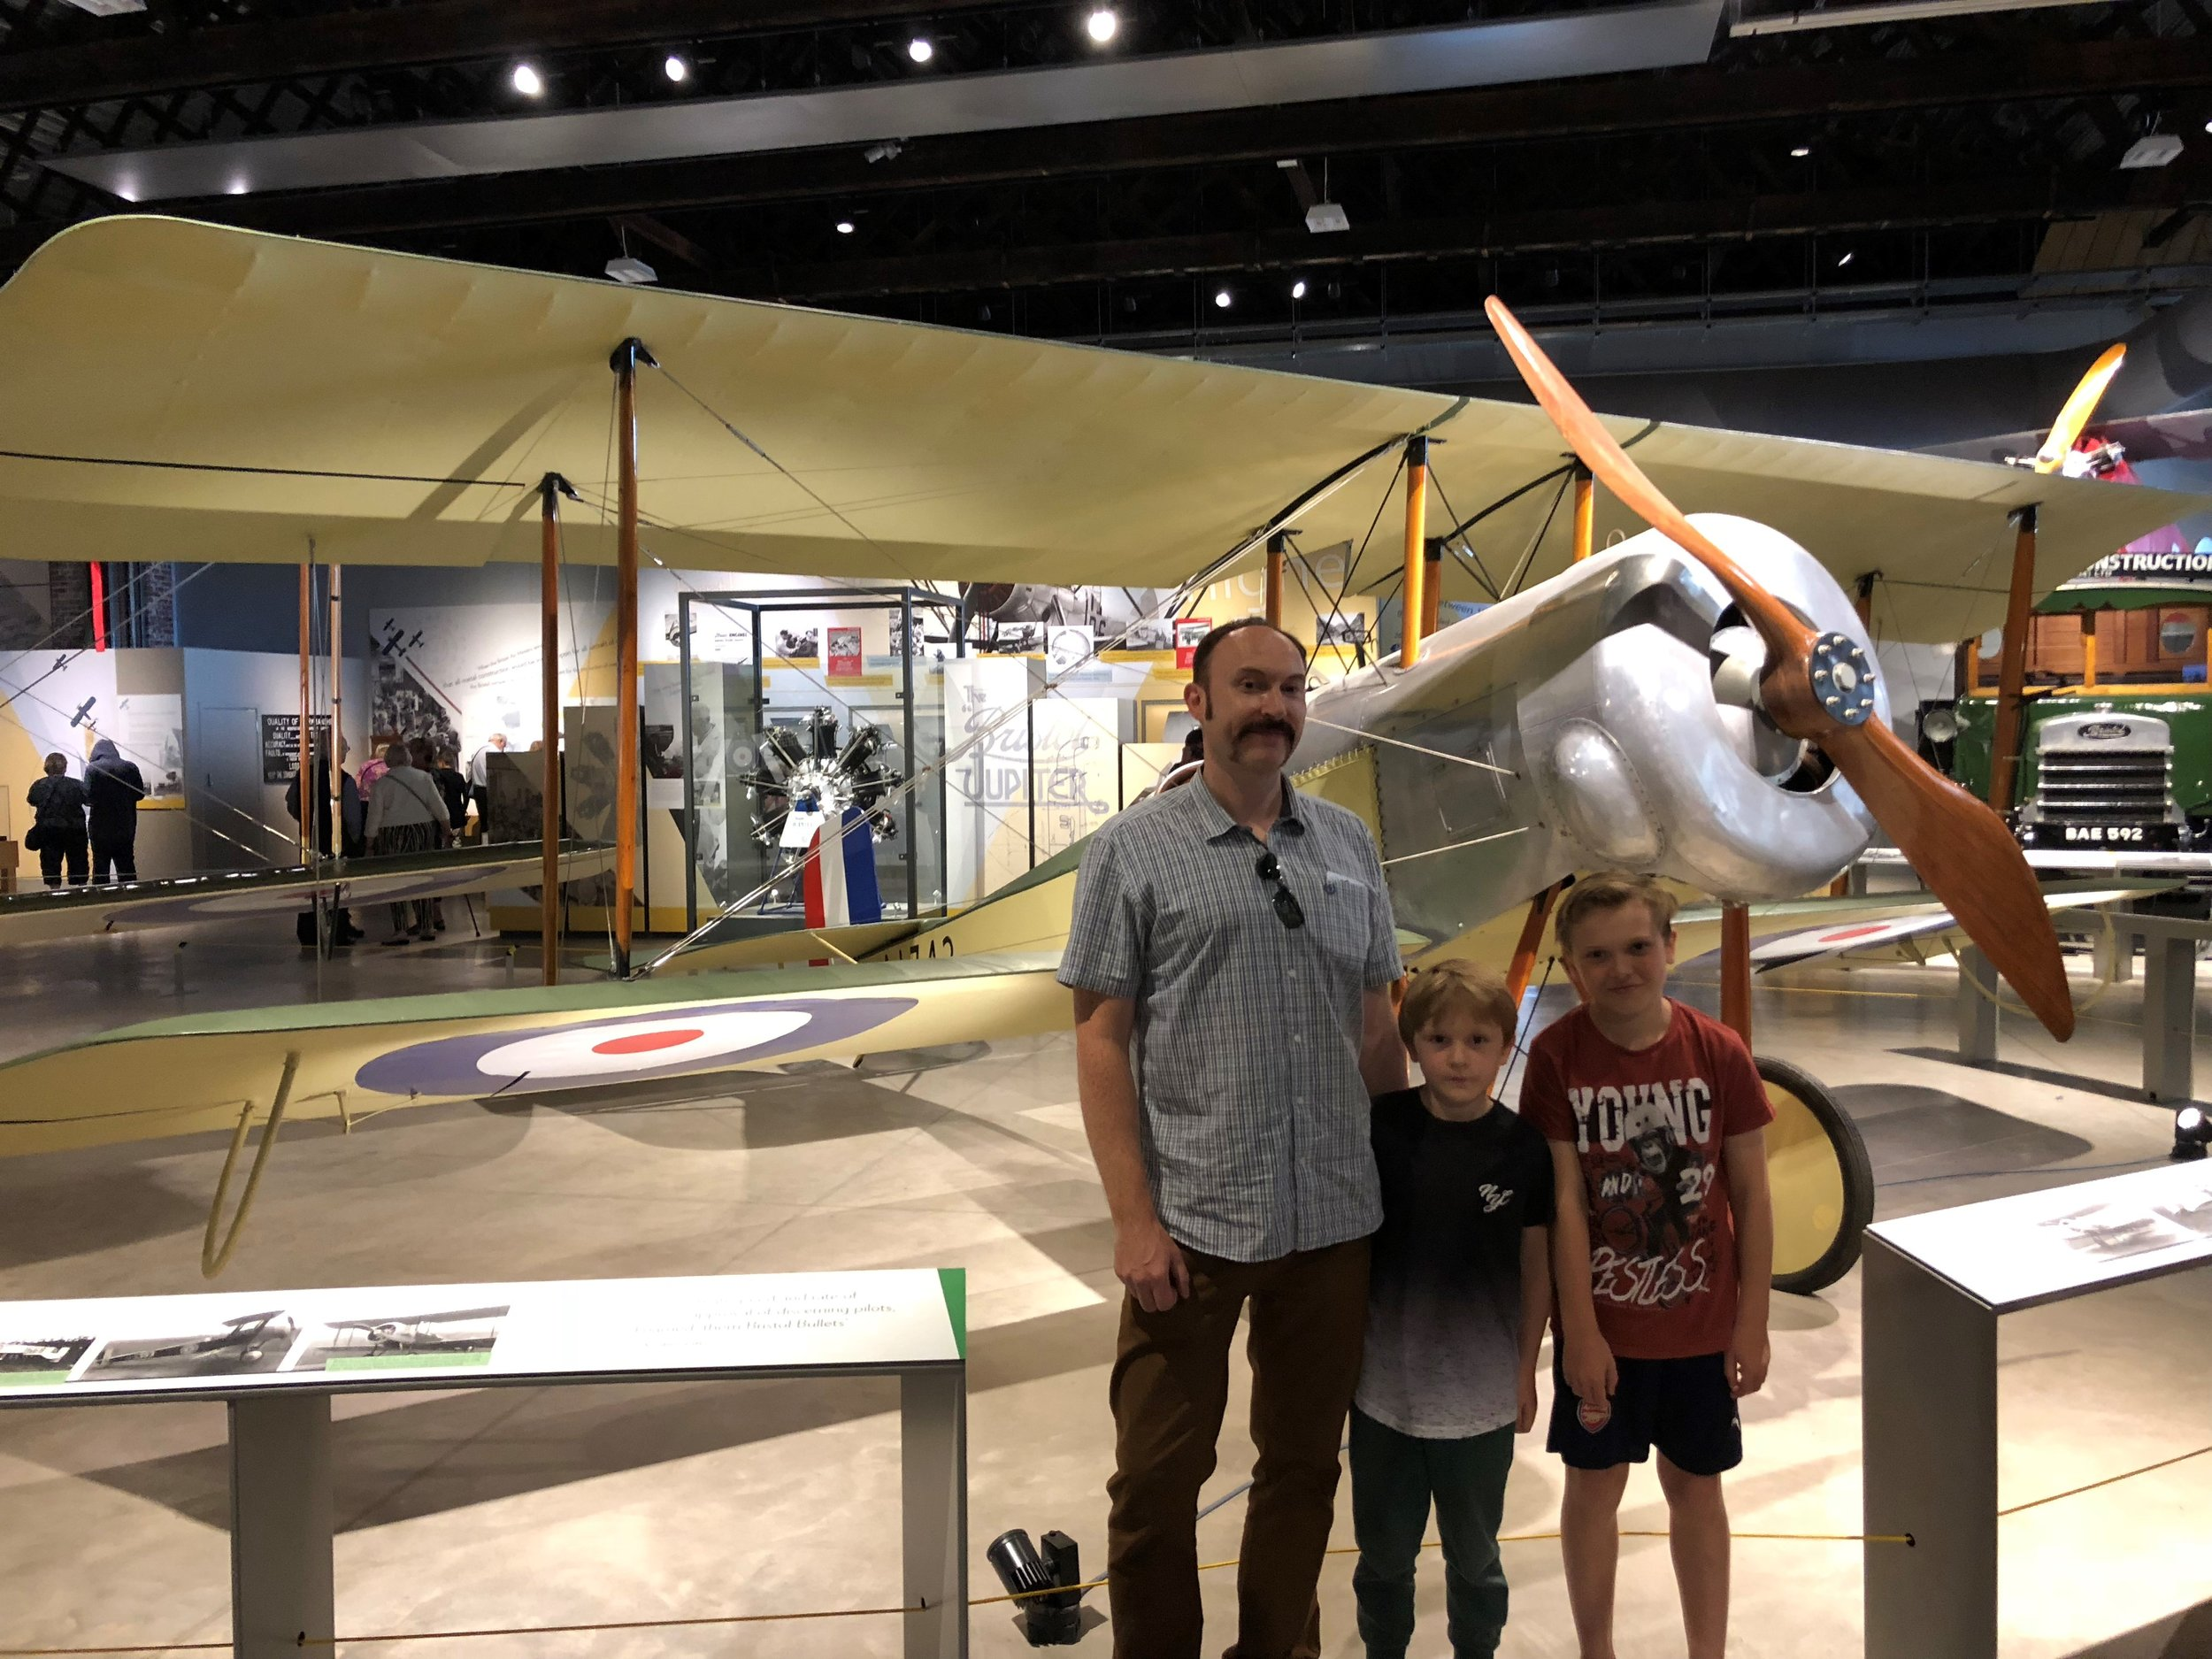 The Gascoigne family celebrate being Aerospace Bristol 150,000th visitors